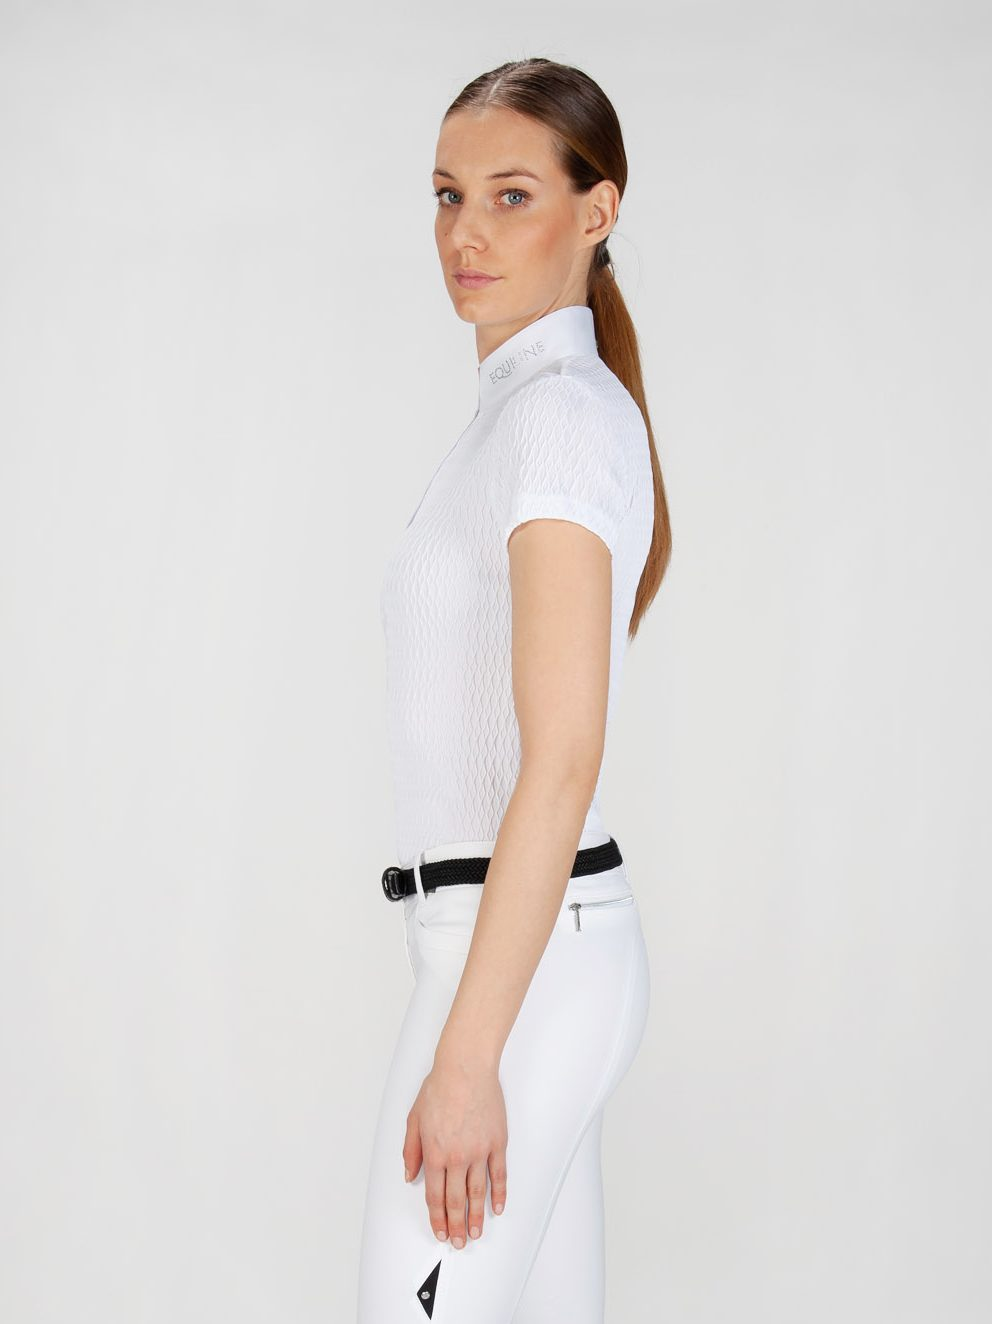 NEW ALISSA - Women's Show Shirt with Jewel 3